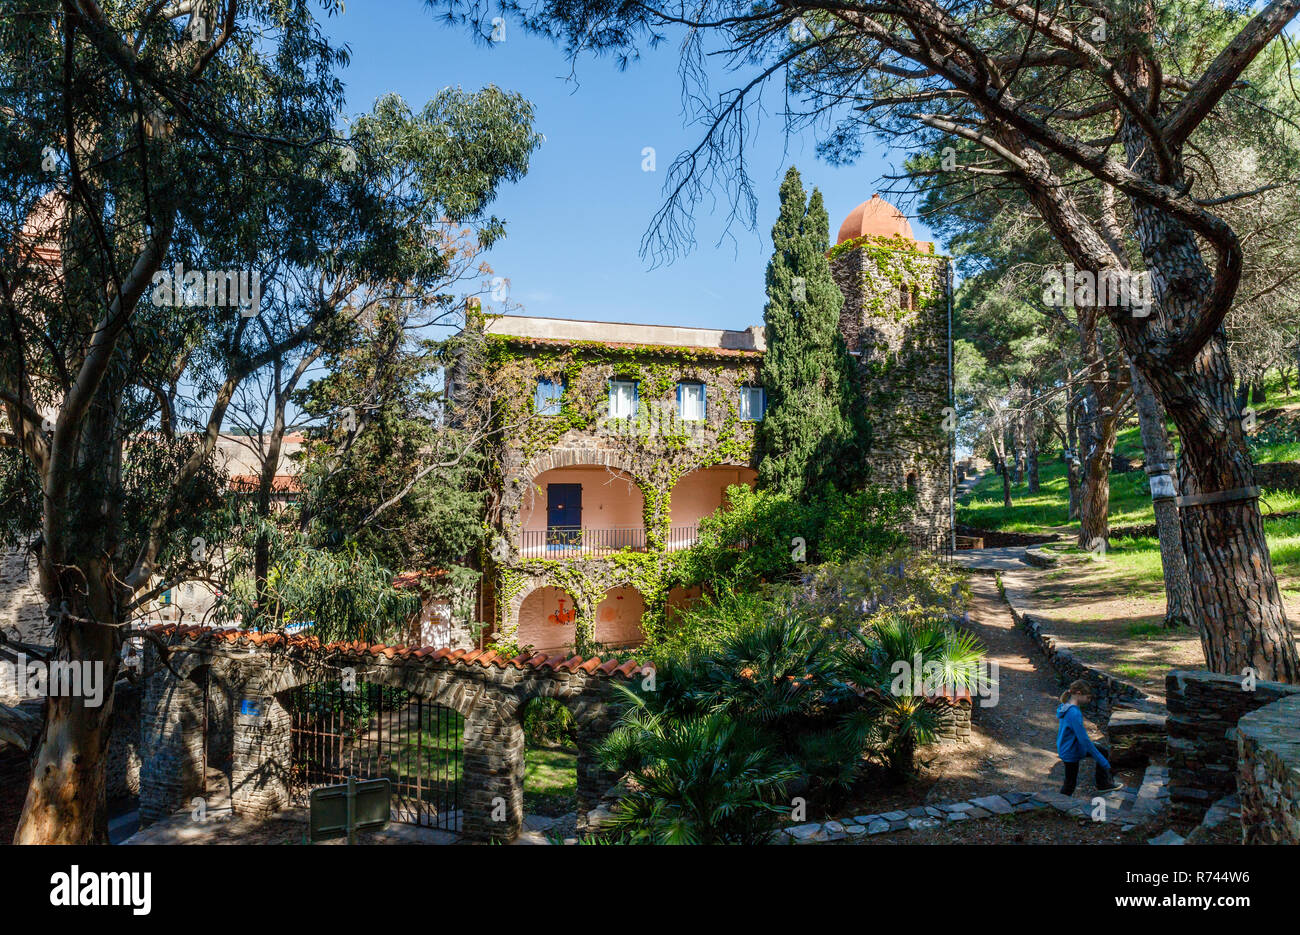 France, Pyrenees Orientales, Cote Vermeille, Collioure, Musee d'Art Moderne (Museum of modern Art) in the Pams park // France, Pyrénées-Orientales (66 - Stock Image